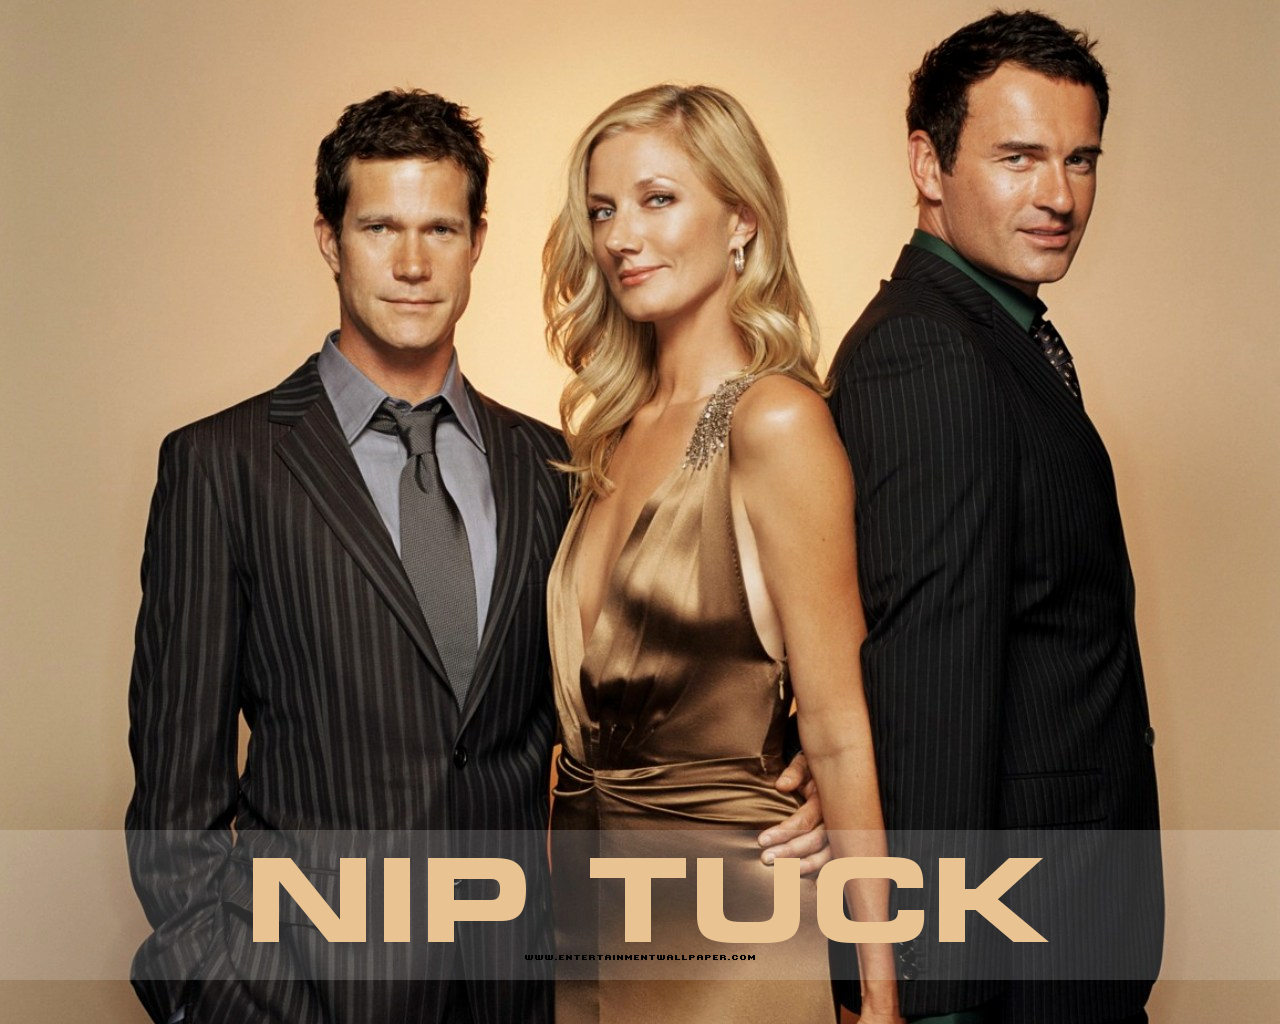 nip tuck random episode generator. Black Bedroom Furniture Sets. Home Design Ideas